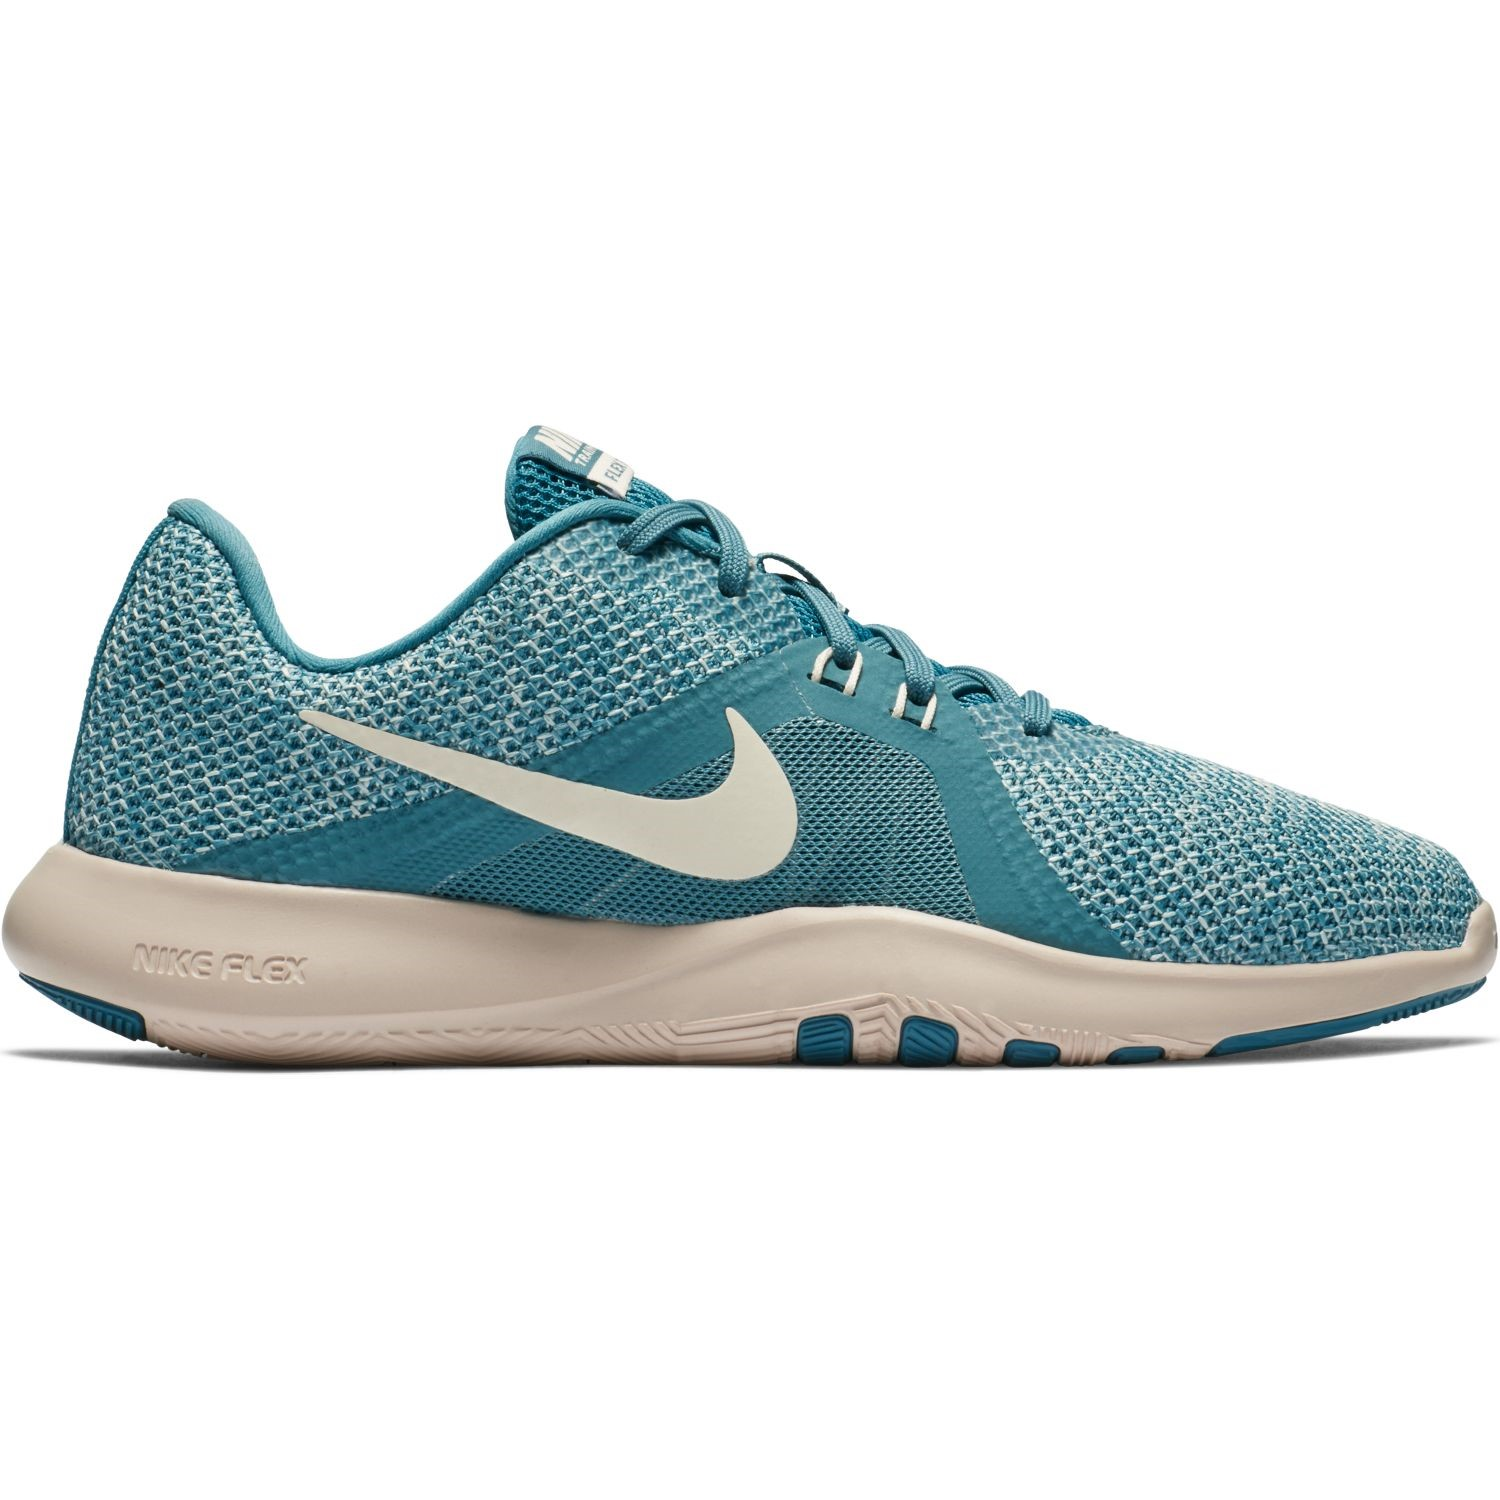 40ac4e28e989 Nike Flex Trainer 8 - Womens Training Shoes - Celestial Teal Guava ...